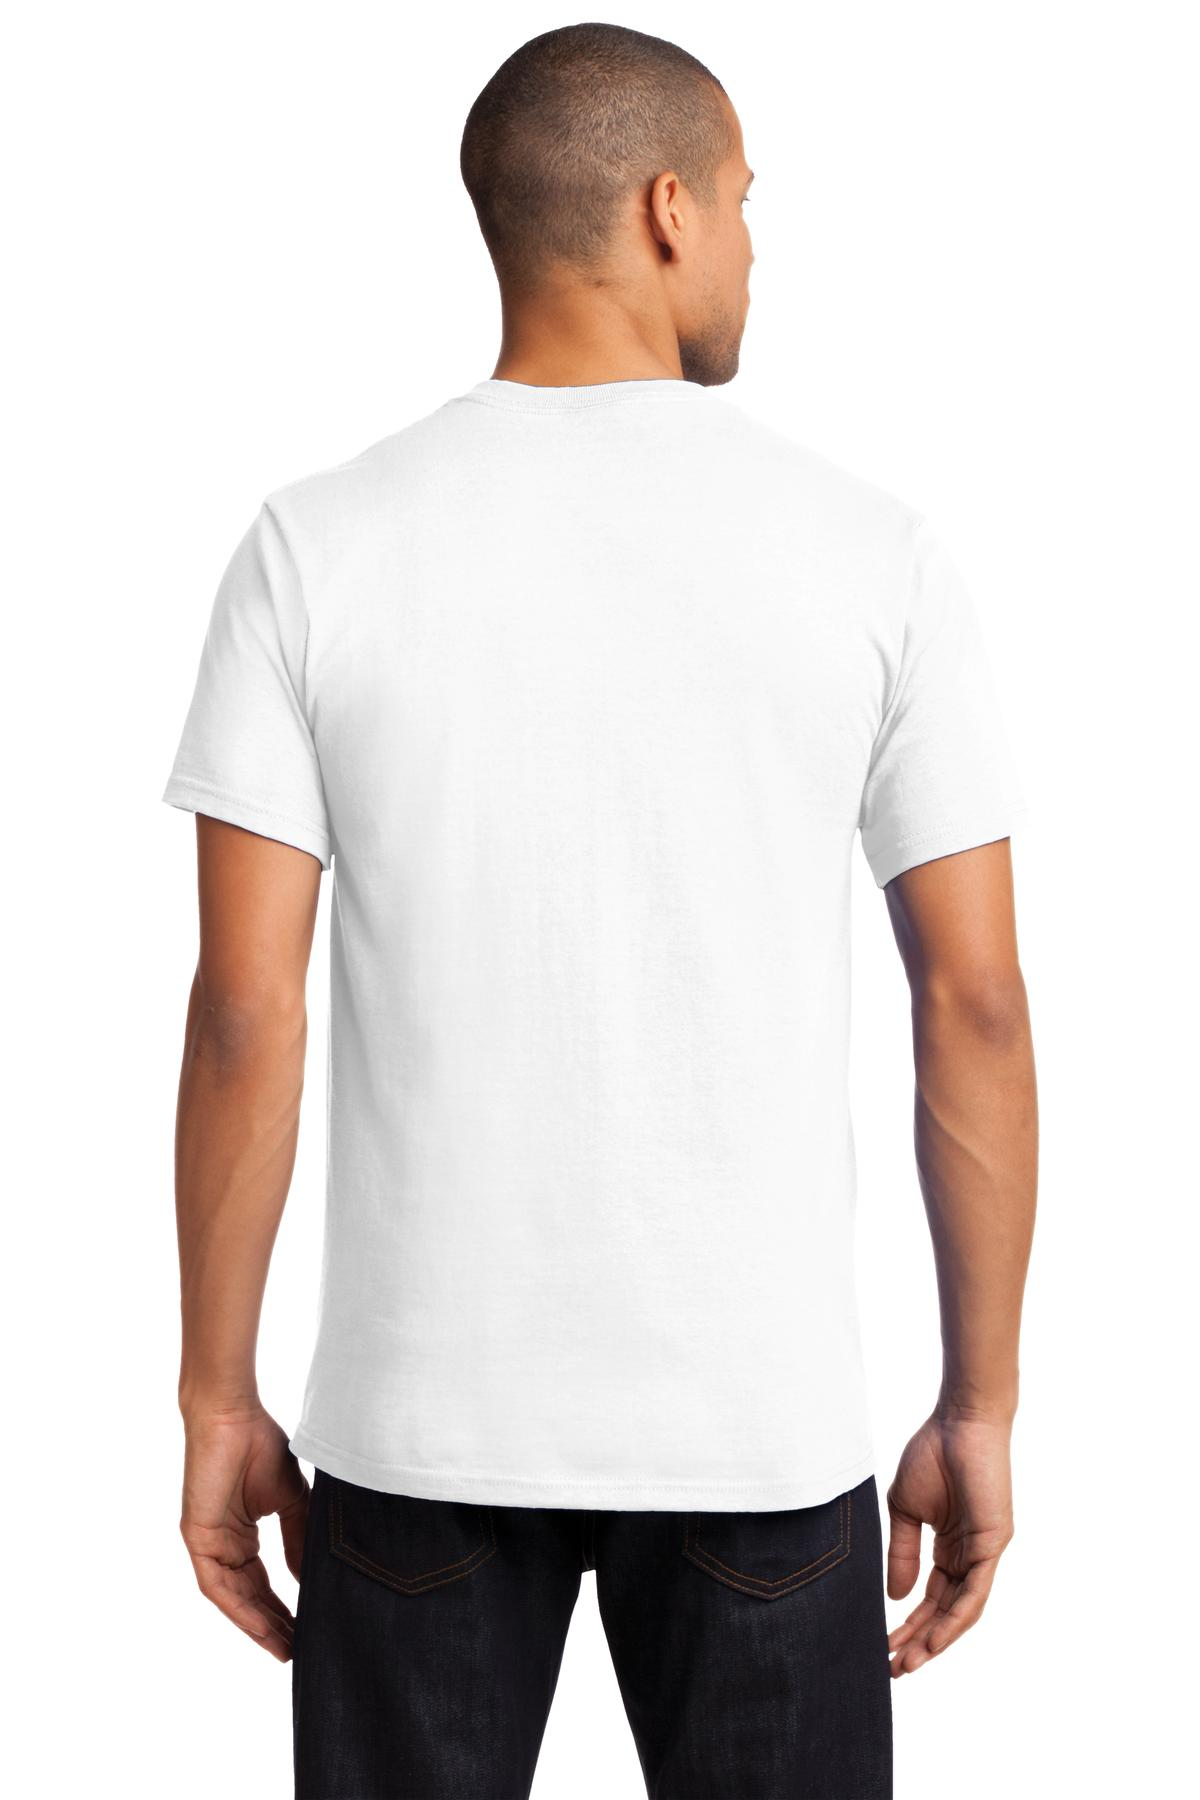 Port-amp-Company-Tall-Essential-TShirt-with-Pocket-PC61PT-Size-LT-4XLT thumbnail 36